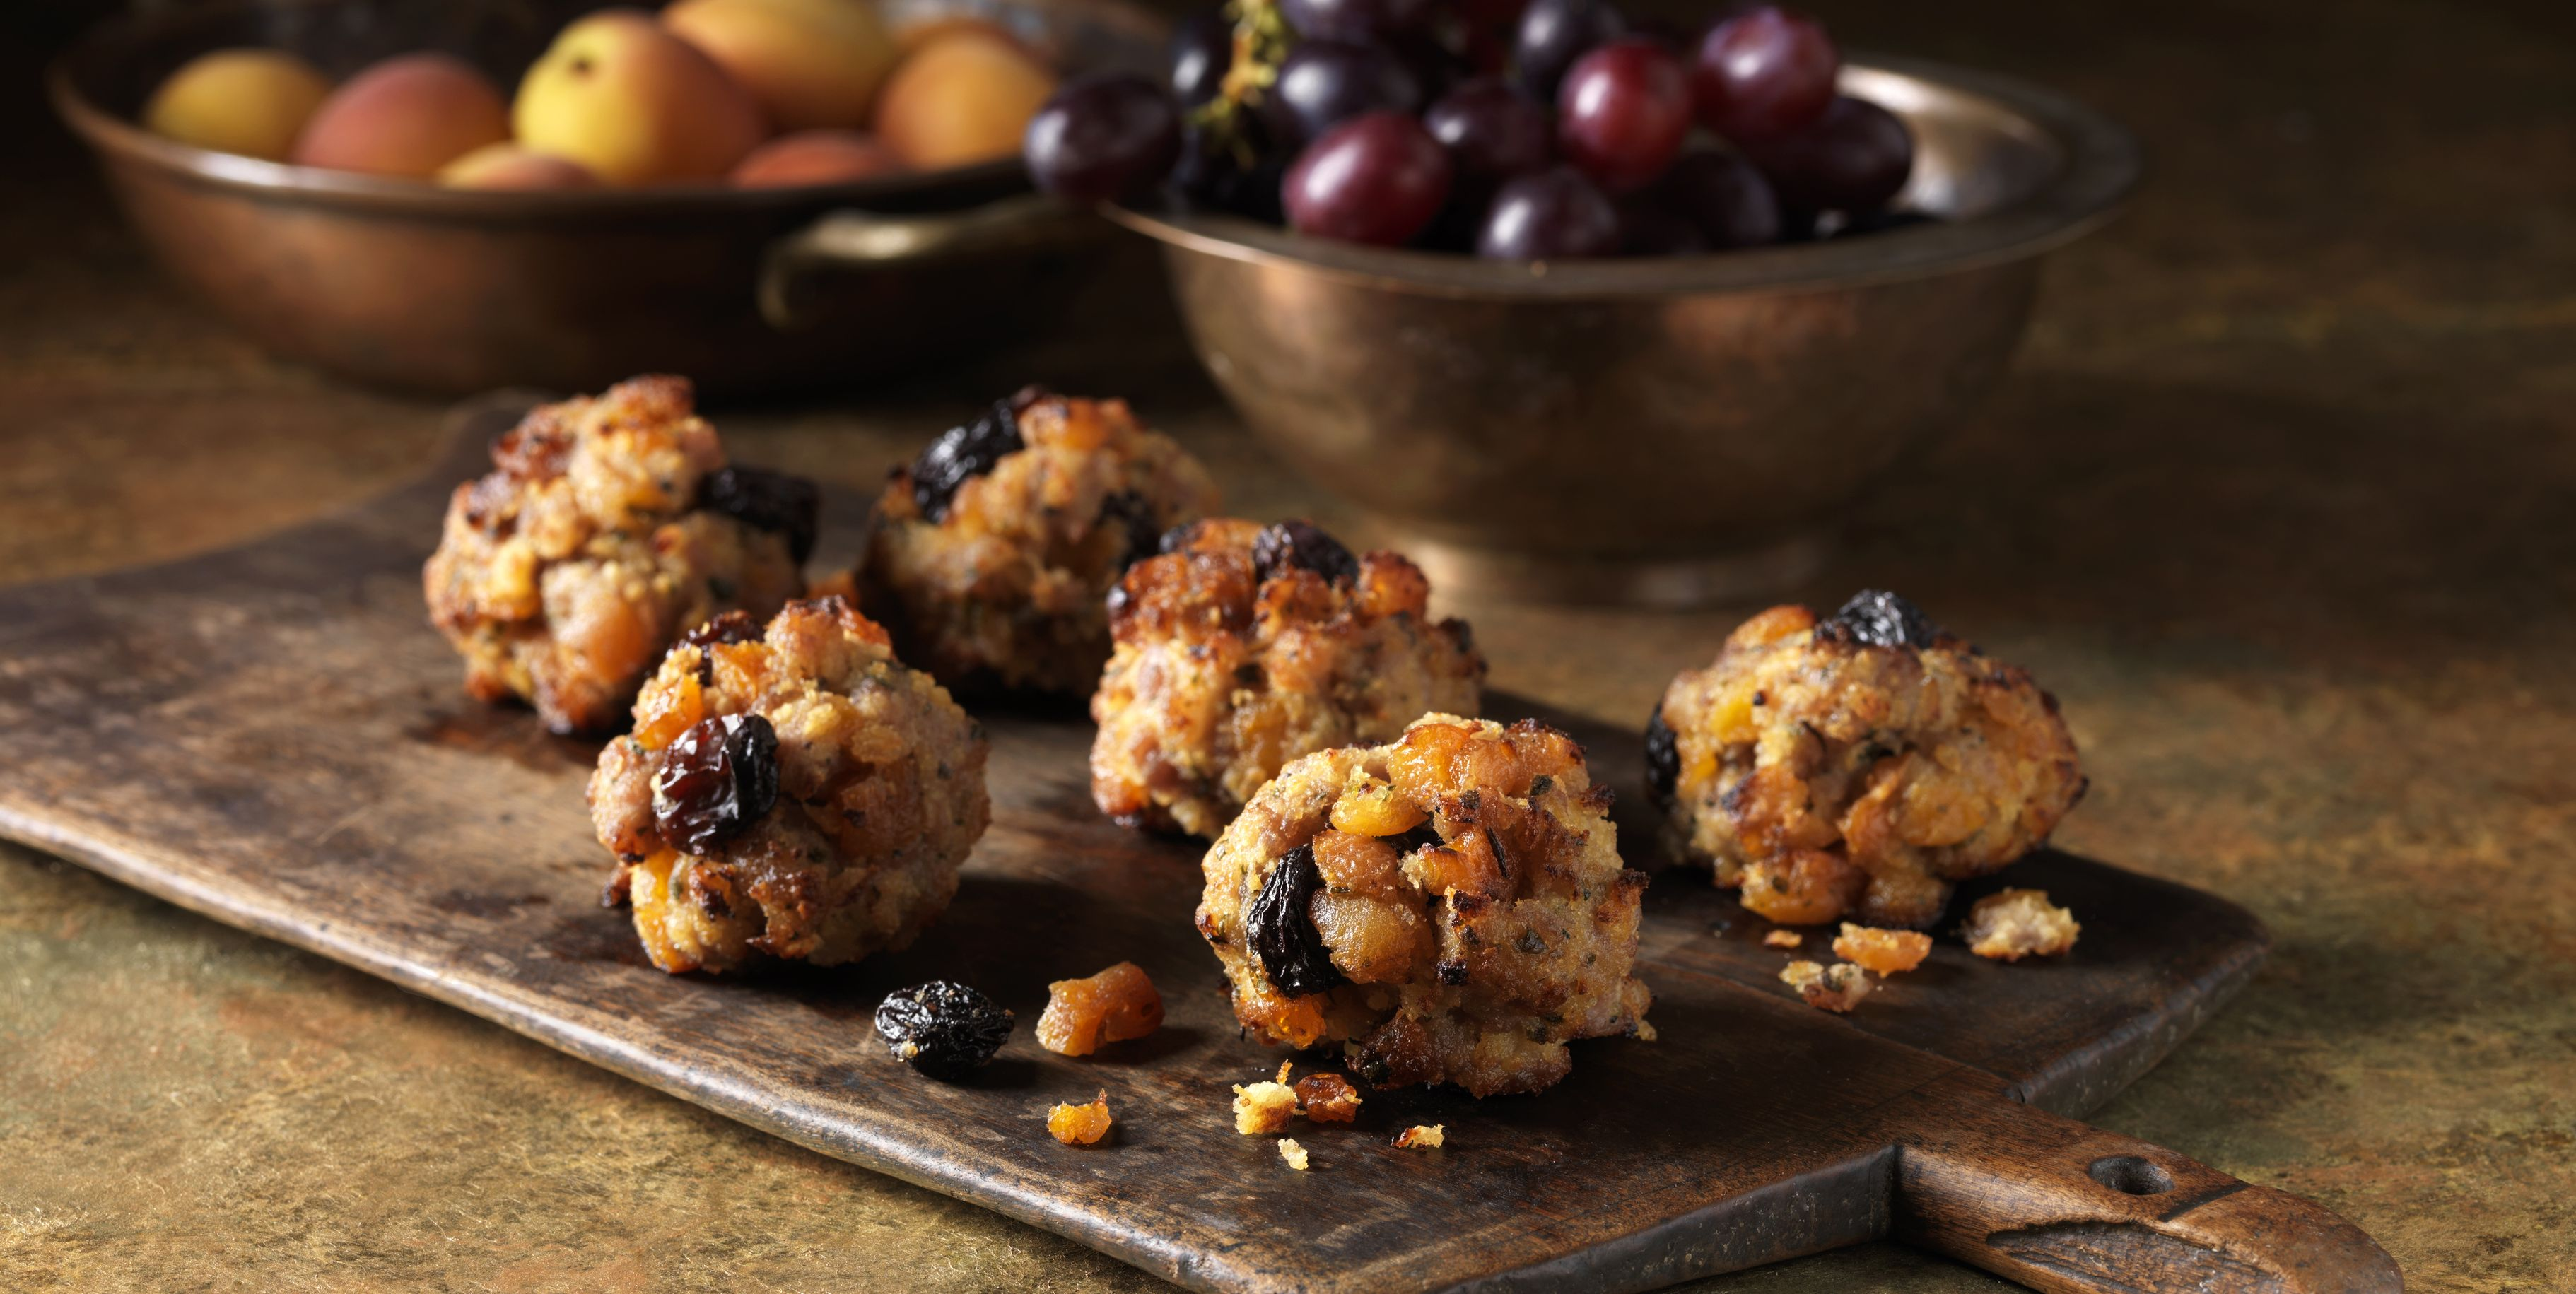 Festive Christmas ingredients of pork, apricot & jumbo flamed raisin stuffing with red grapes and apricots